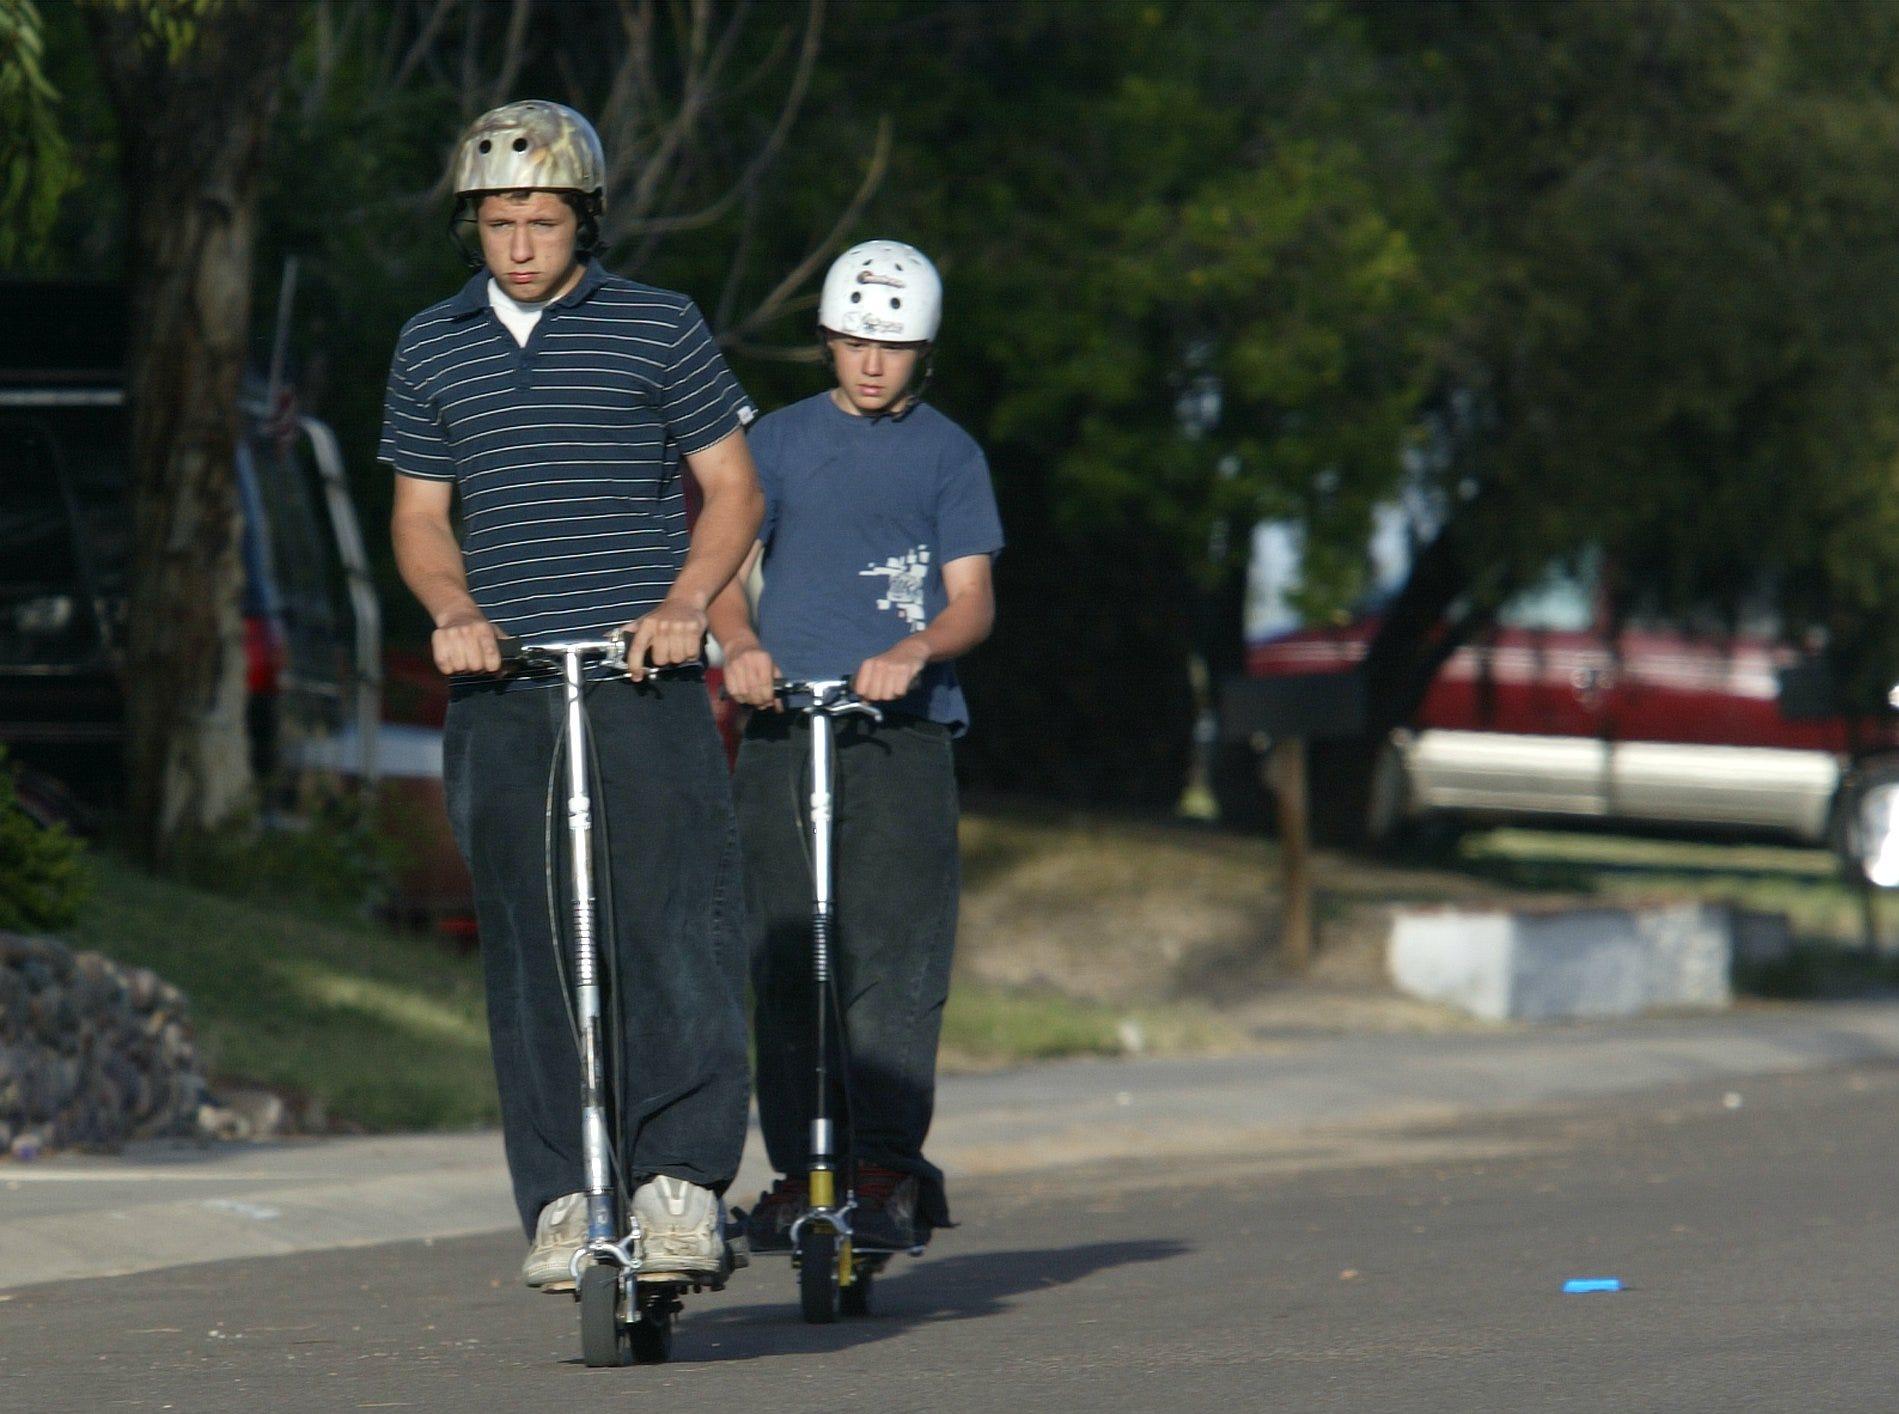 Scott White, then 15, right, and Tim Clark, then 17, ride their go-peds, or electric skateboards, on Buffalo Street in Chandler in this 2003 file photo.